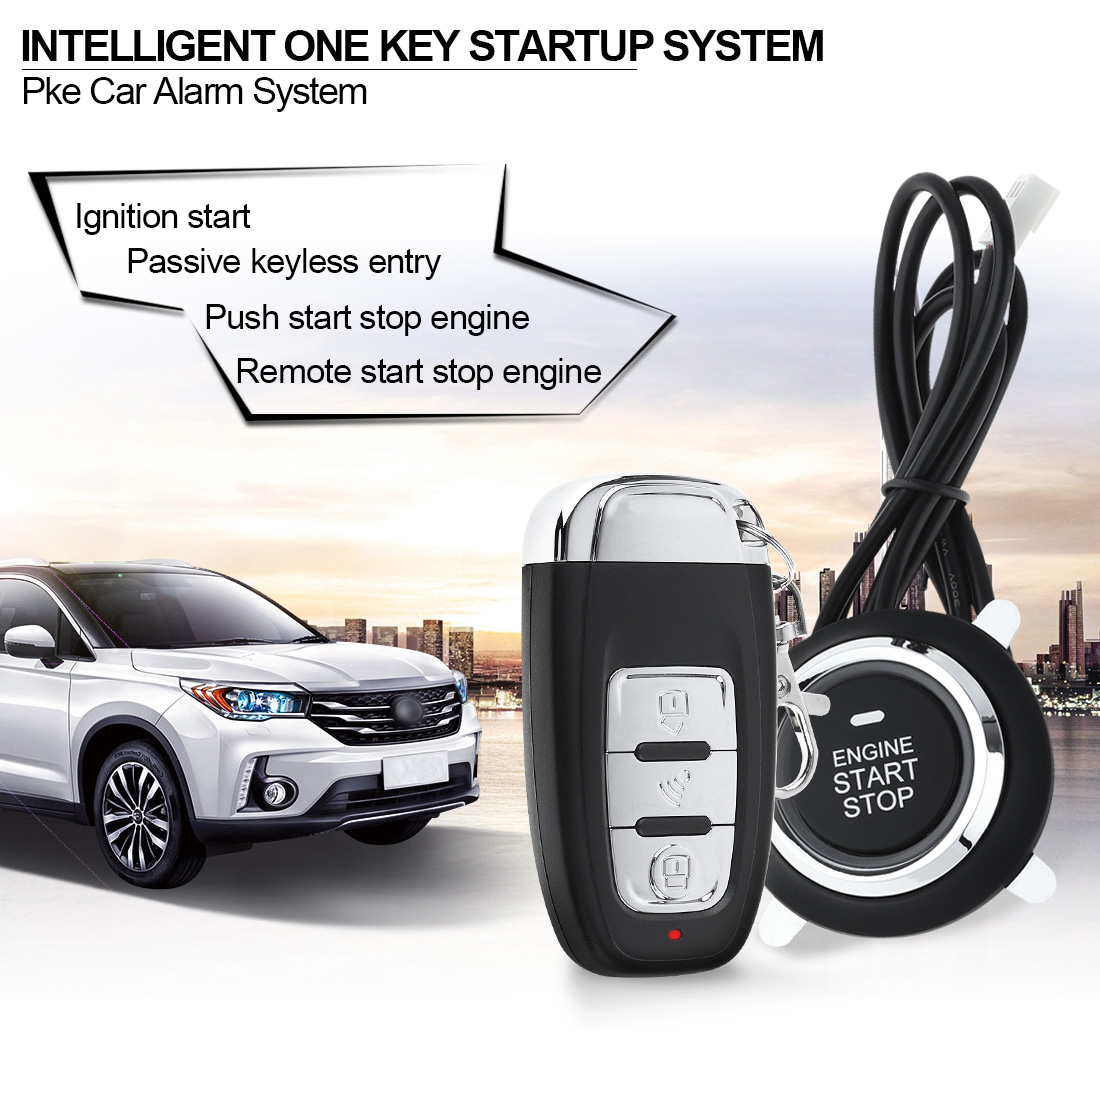 Remote Initiating System PKE Car Smart Alarm Start Stop Engine System with Auto Central Lock Keyless Entry and Vibration Alarm